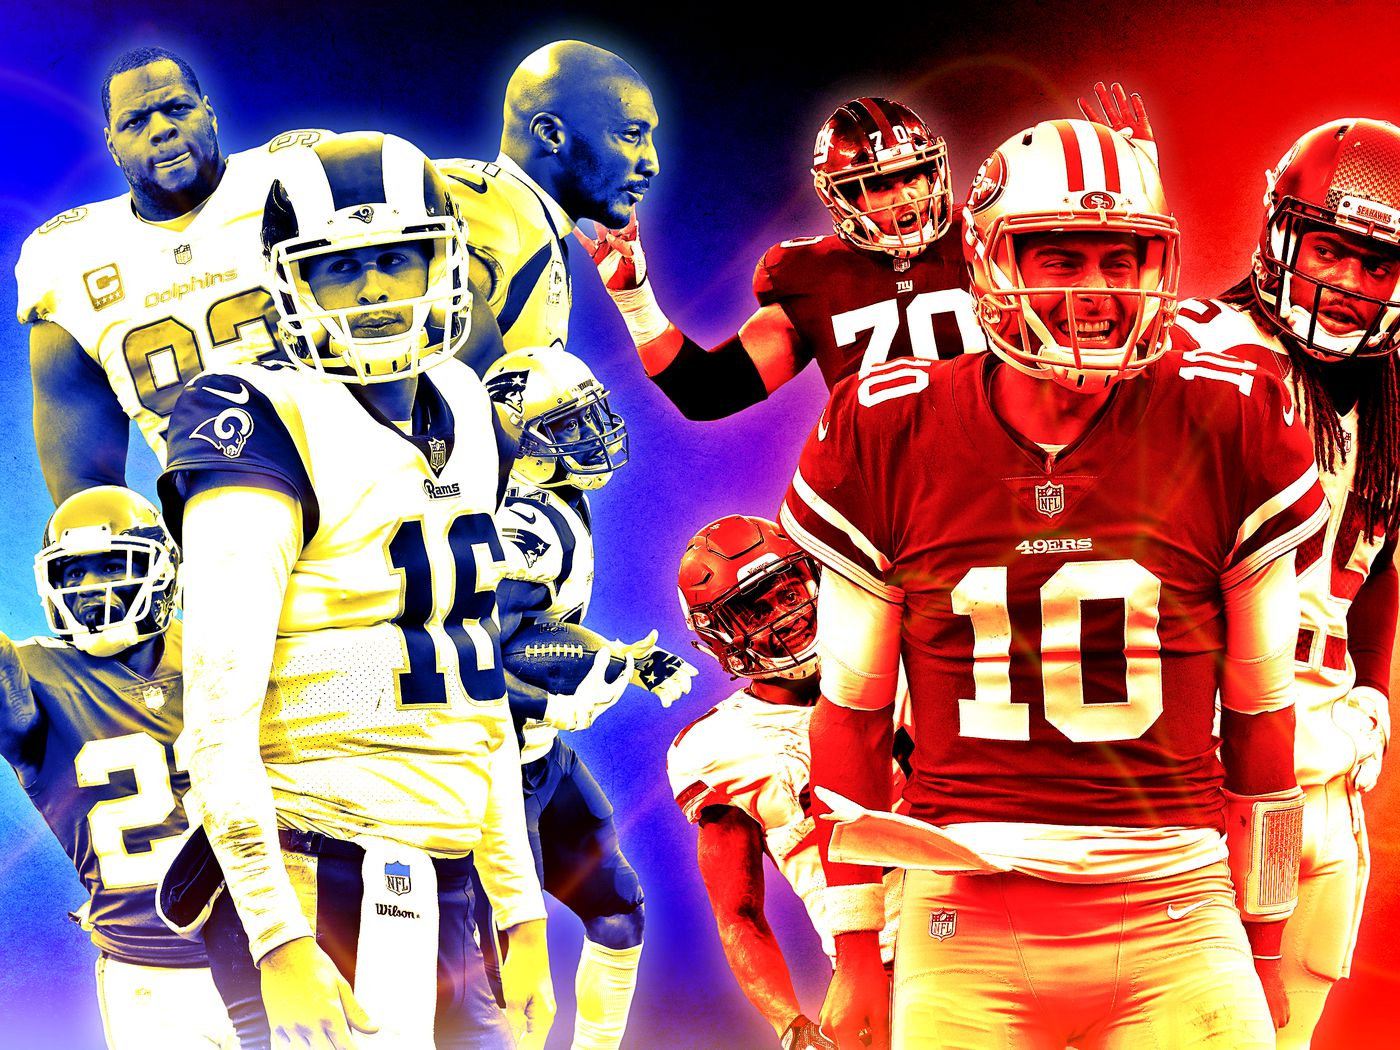 03731edaca8 What the Salary Cap Tells Us About the NFL s Most Extreme Teams - The Ringer